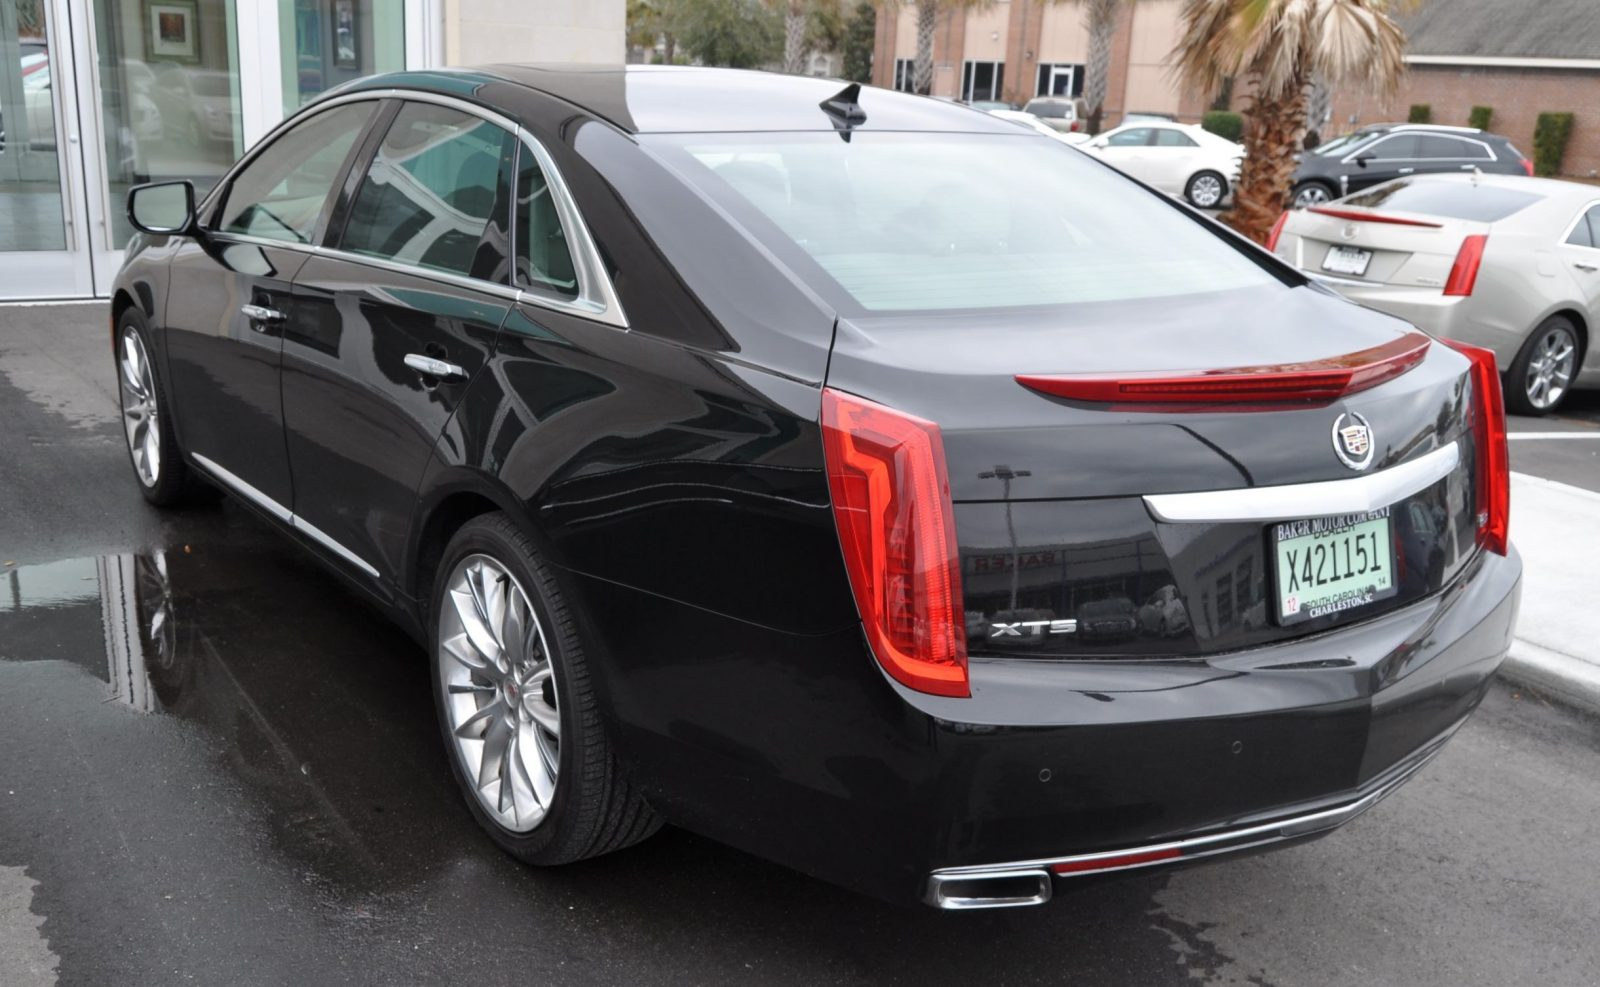 2014 Cadillac XTS4 Platinum Vsport -- First Drive Video and Photos 20